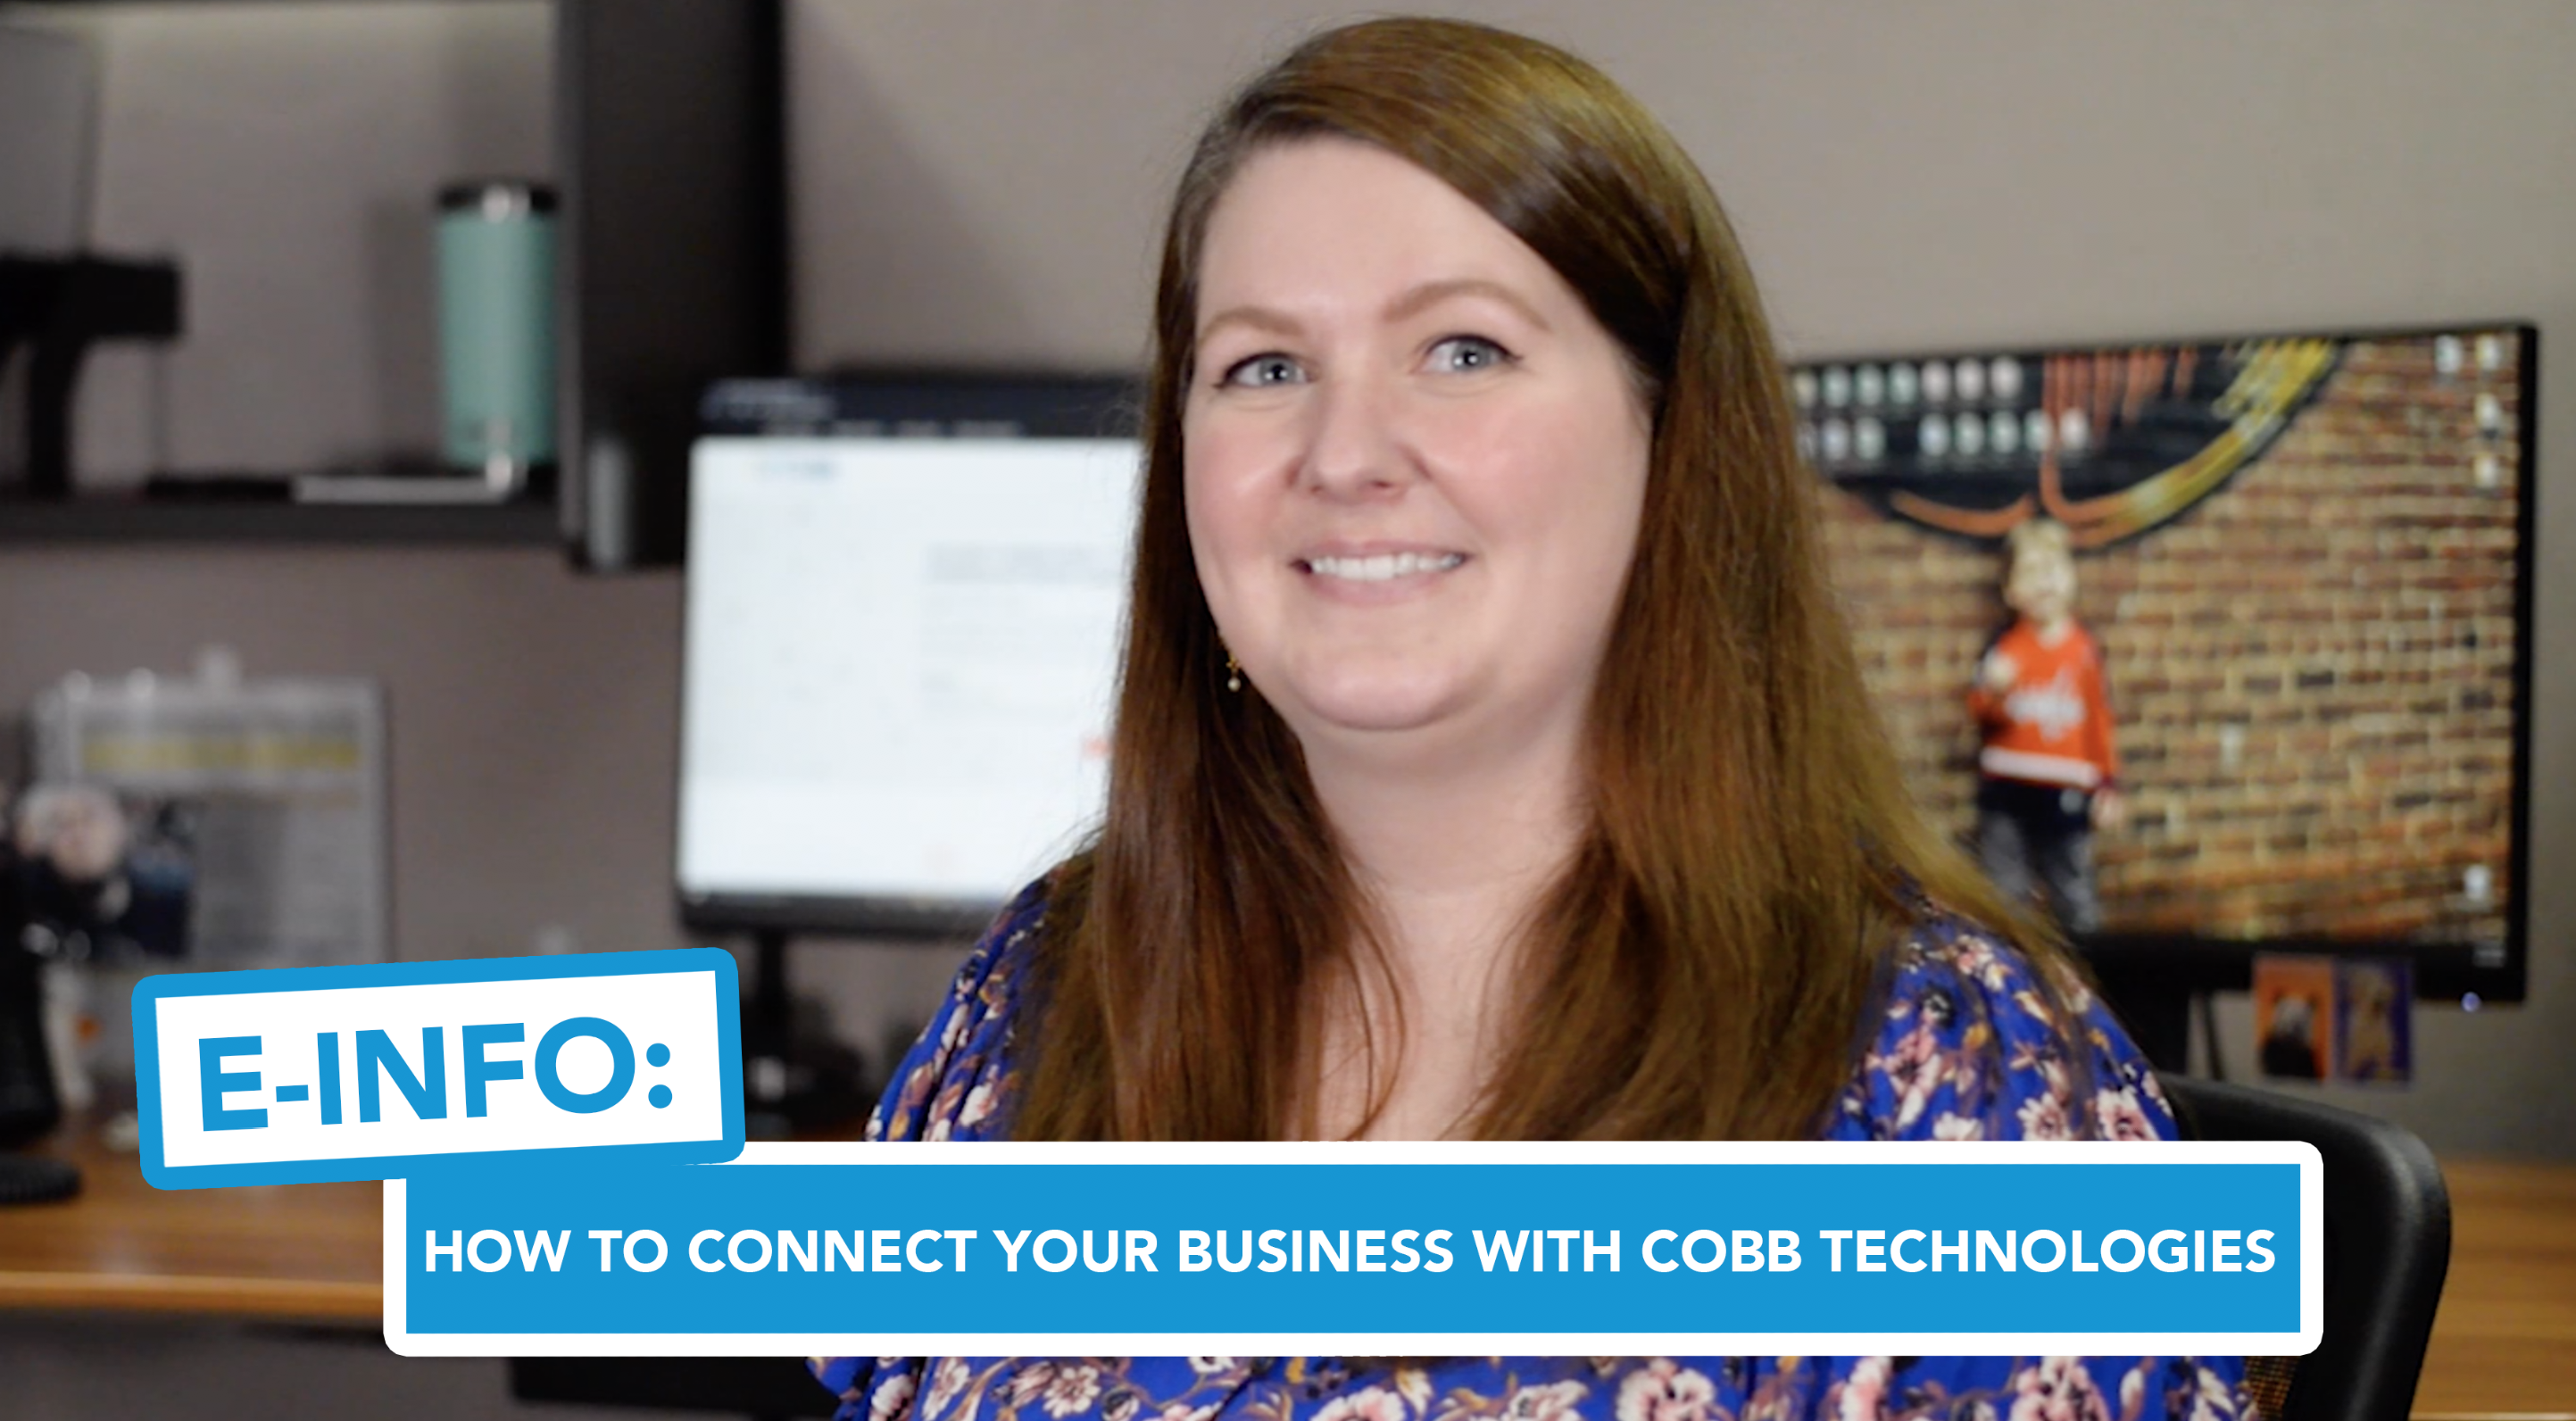 E-Info - How to Connect Your Business With Cobb Technologies Online